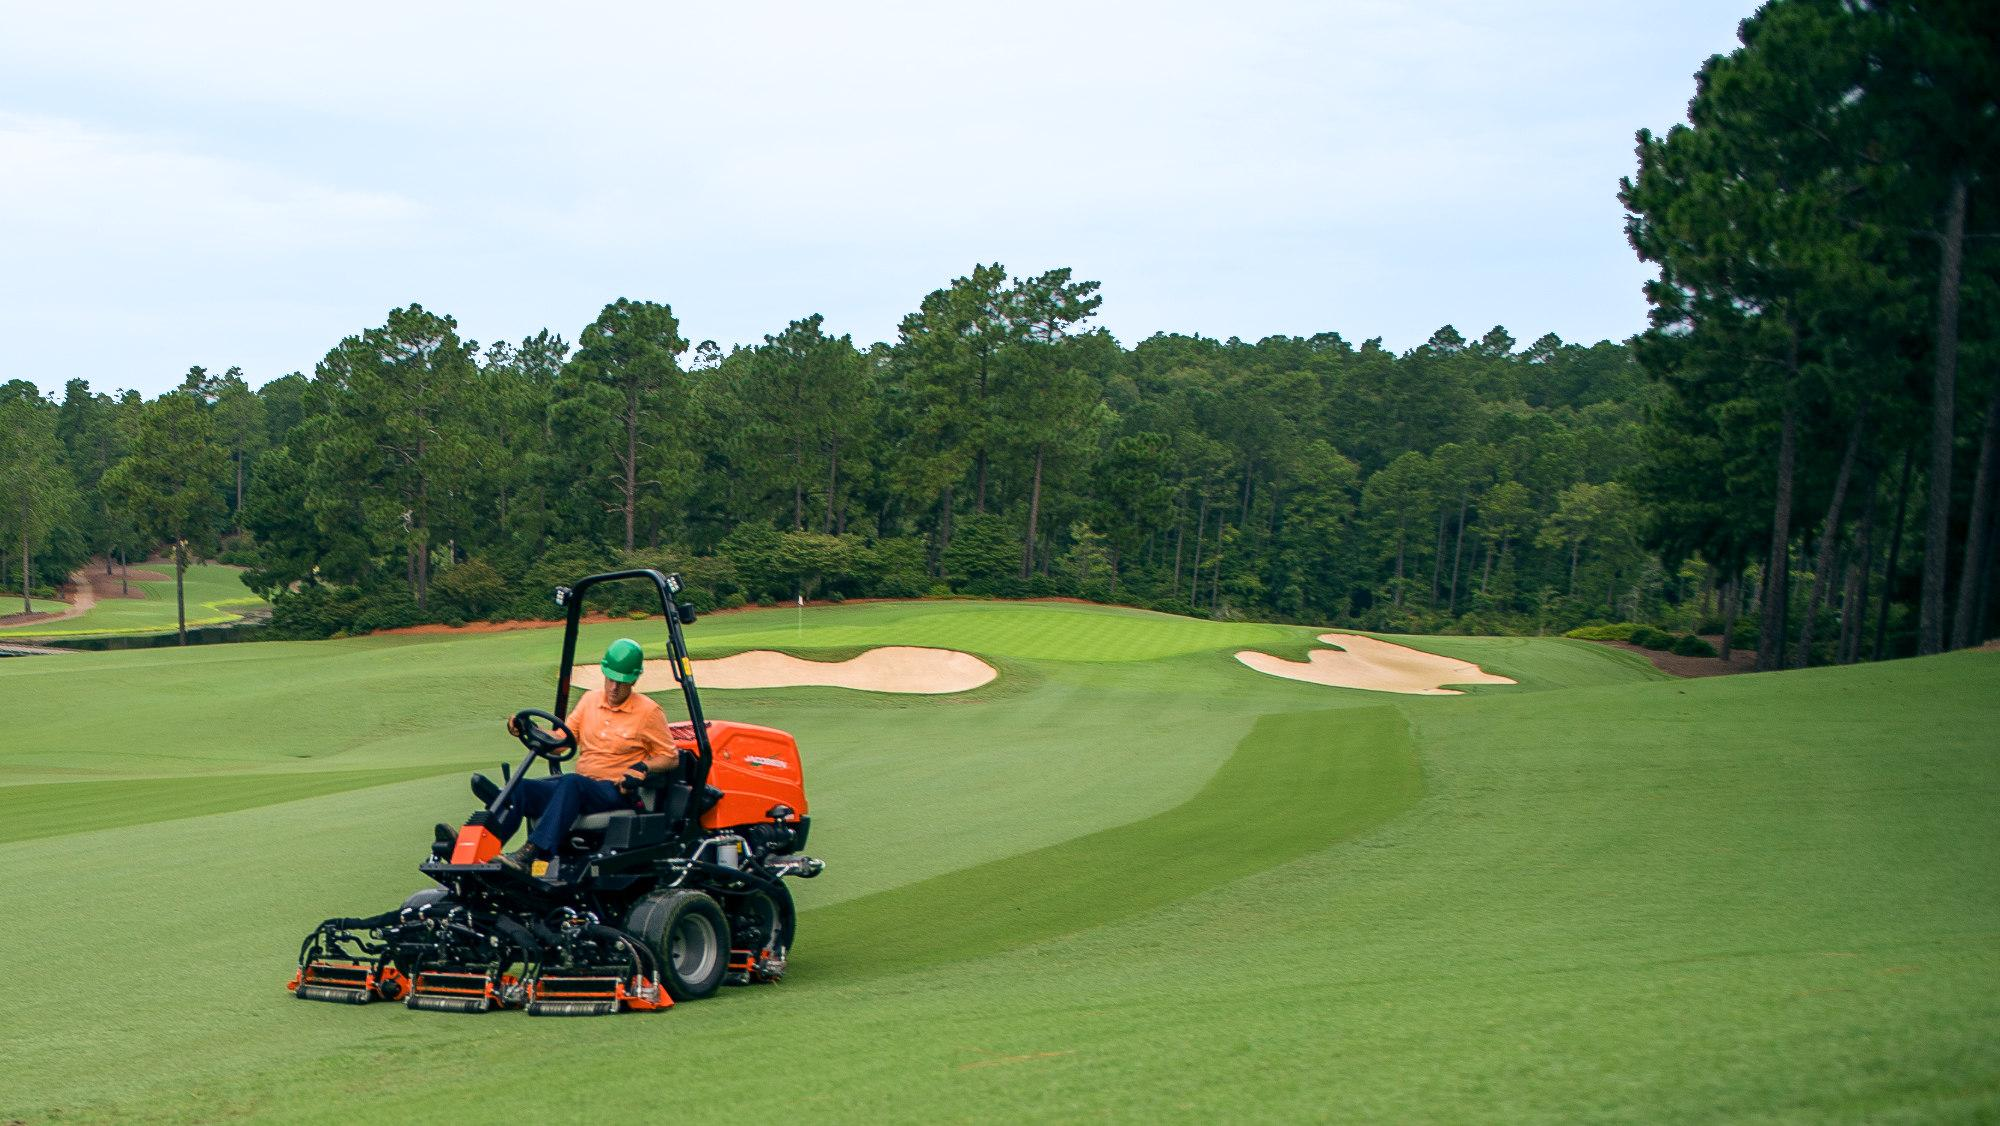 Jacobsen SLF530 mower with less than 10 PSI ground pressure